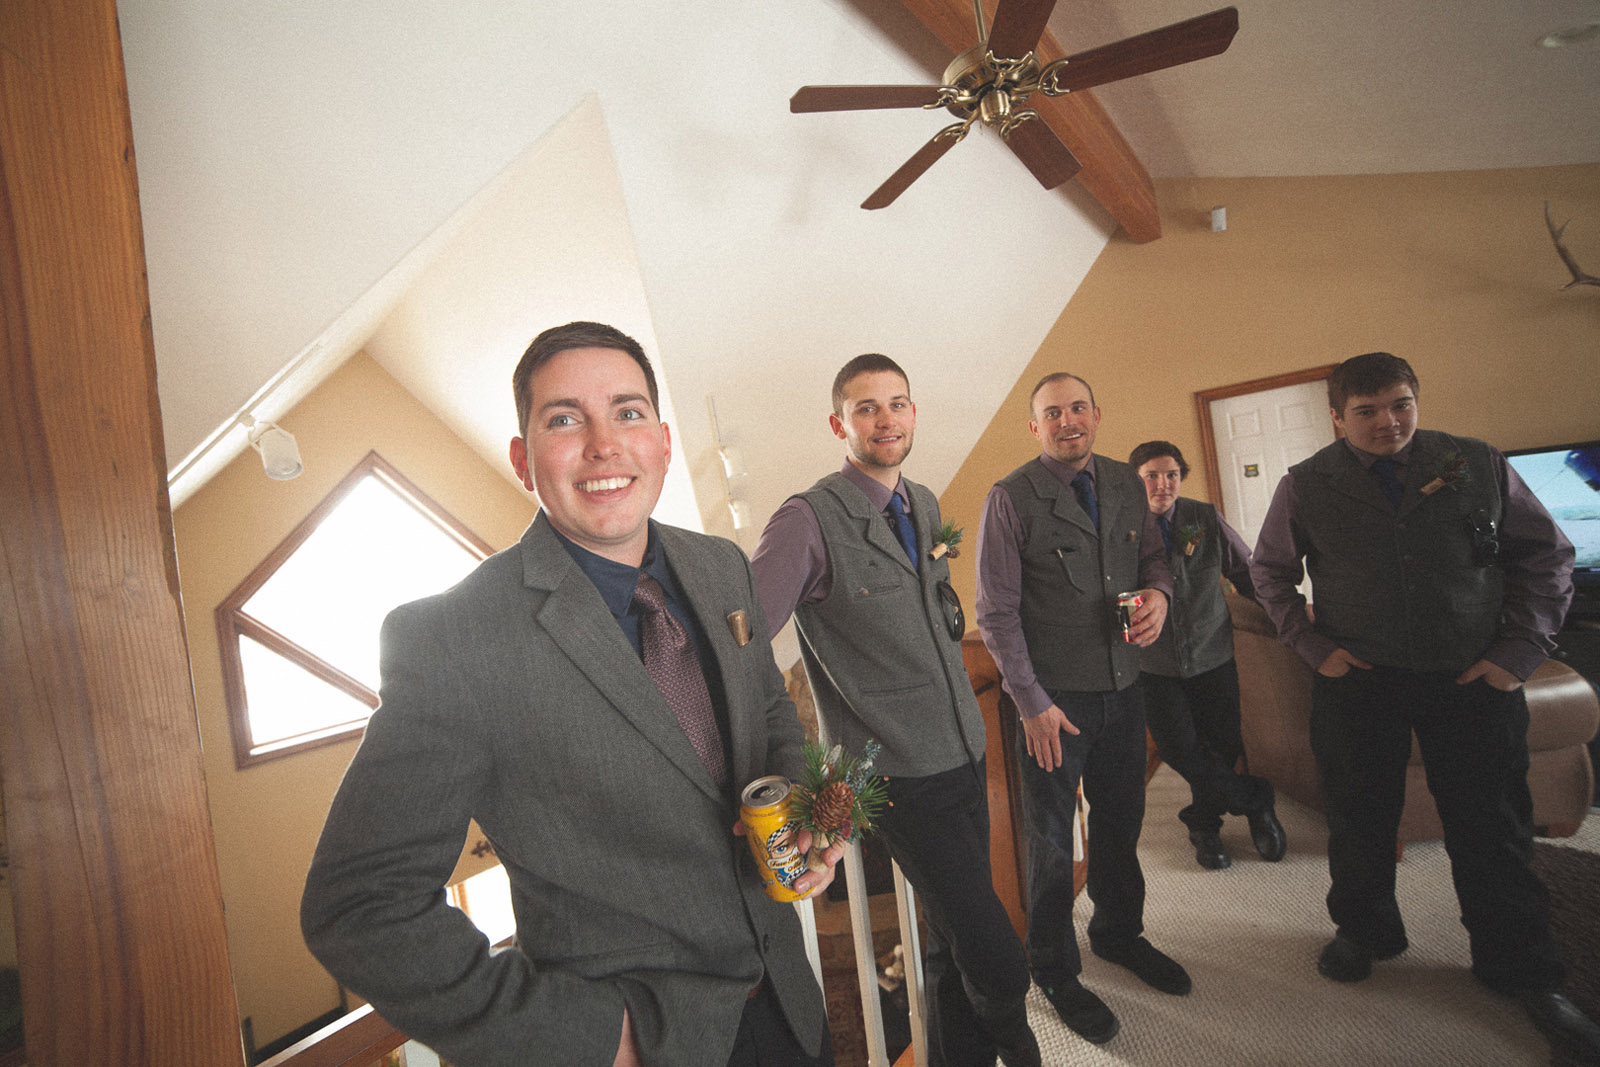 024-groom-getting-ready-for-wedding-in-colorado-mirabal-photography